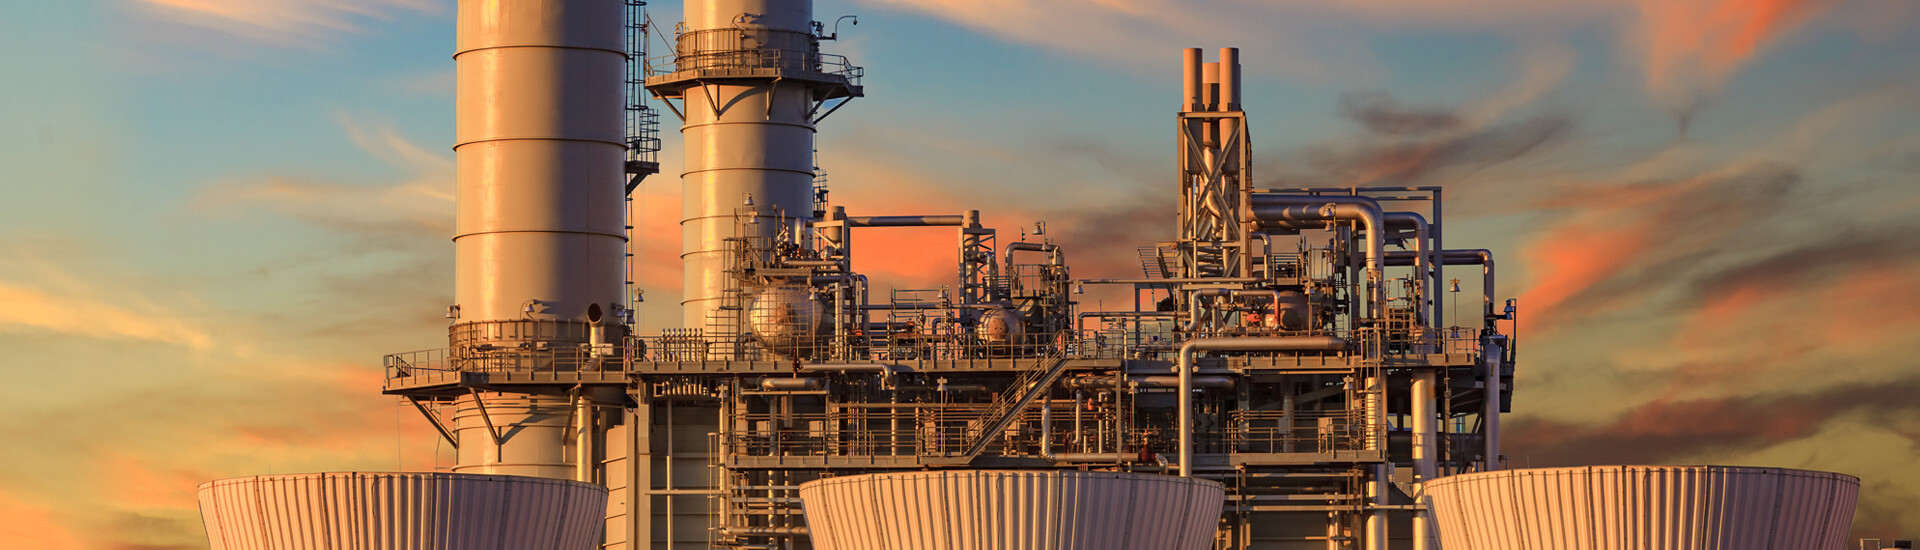 Natural Gas Fired Power Plants - Membrane Technology and